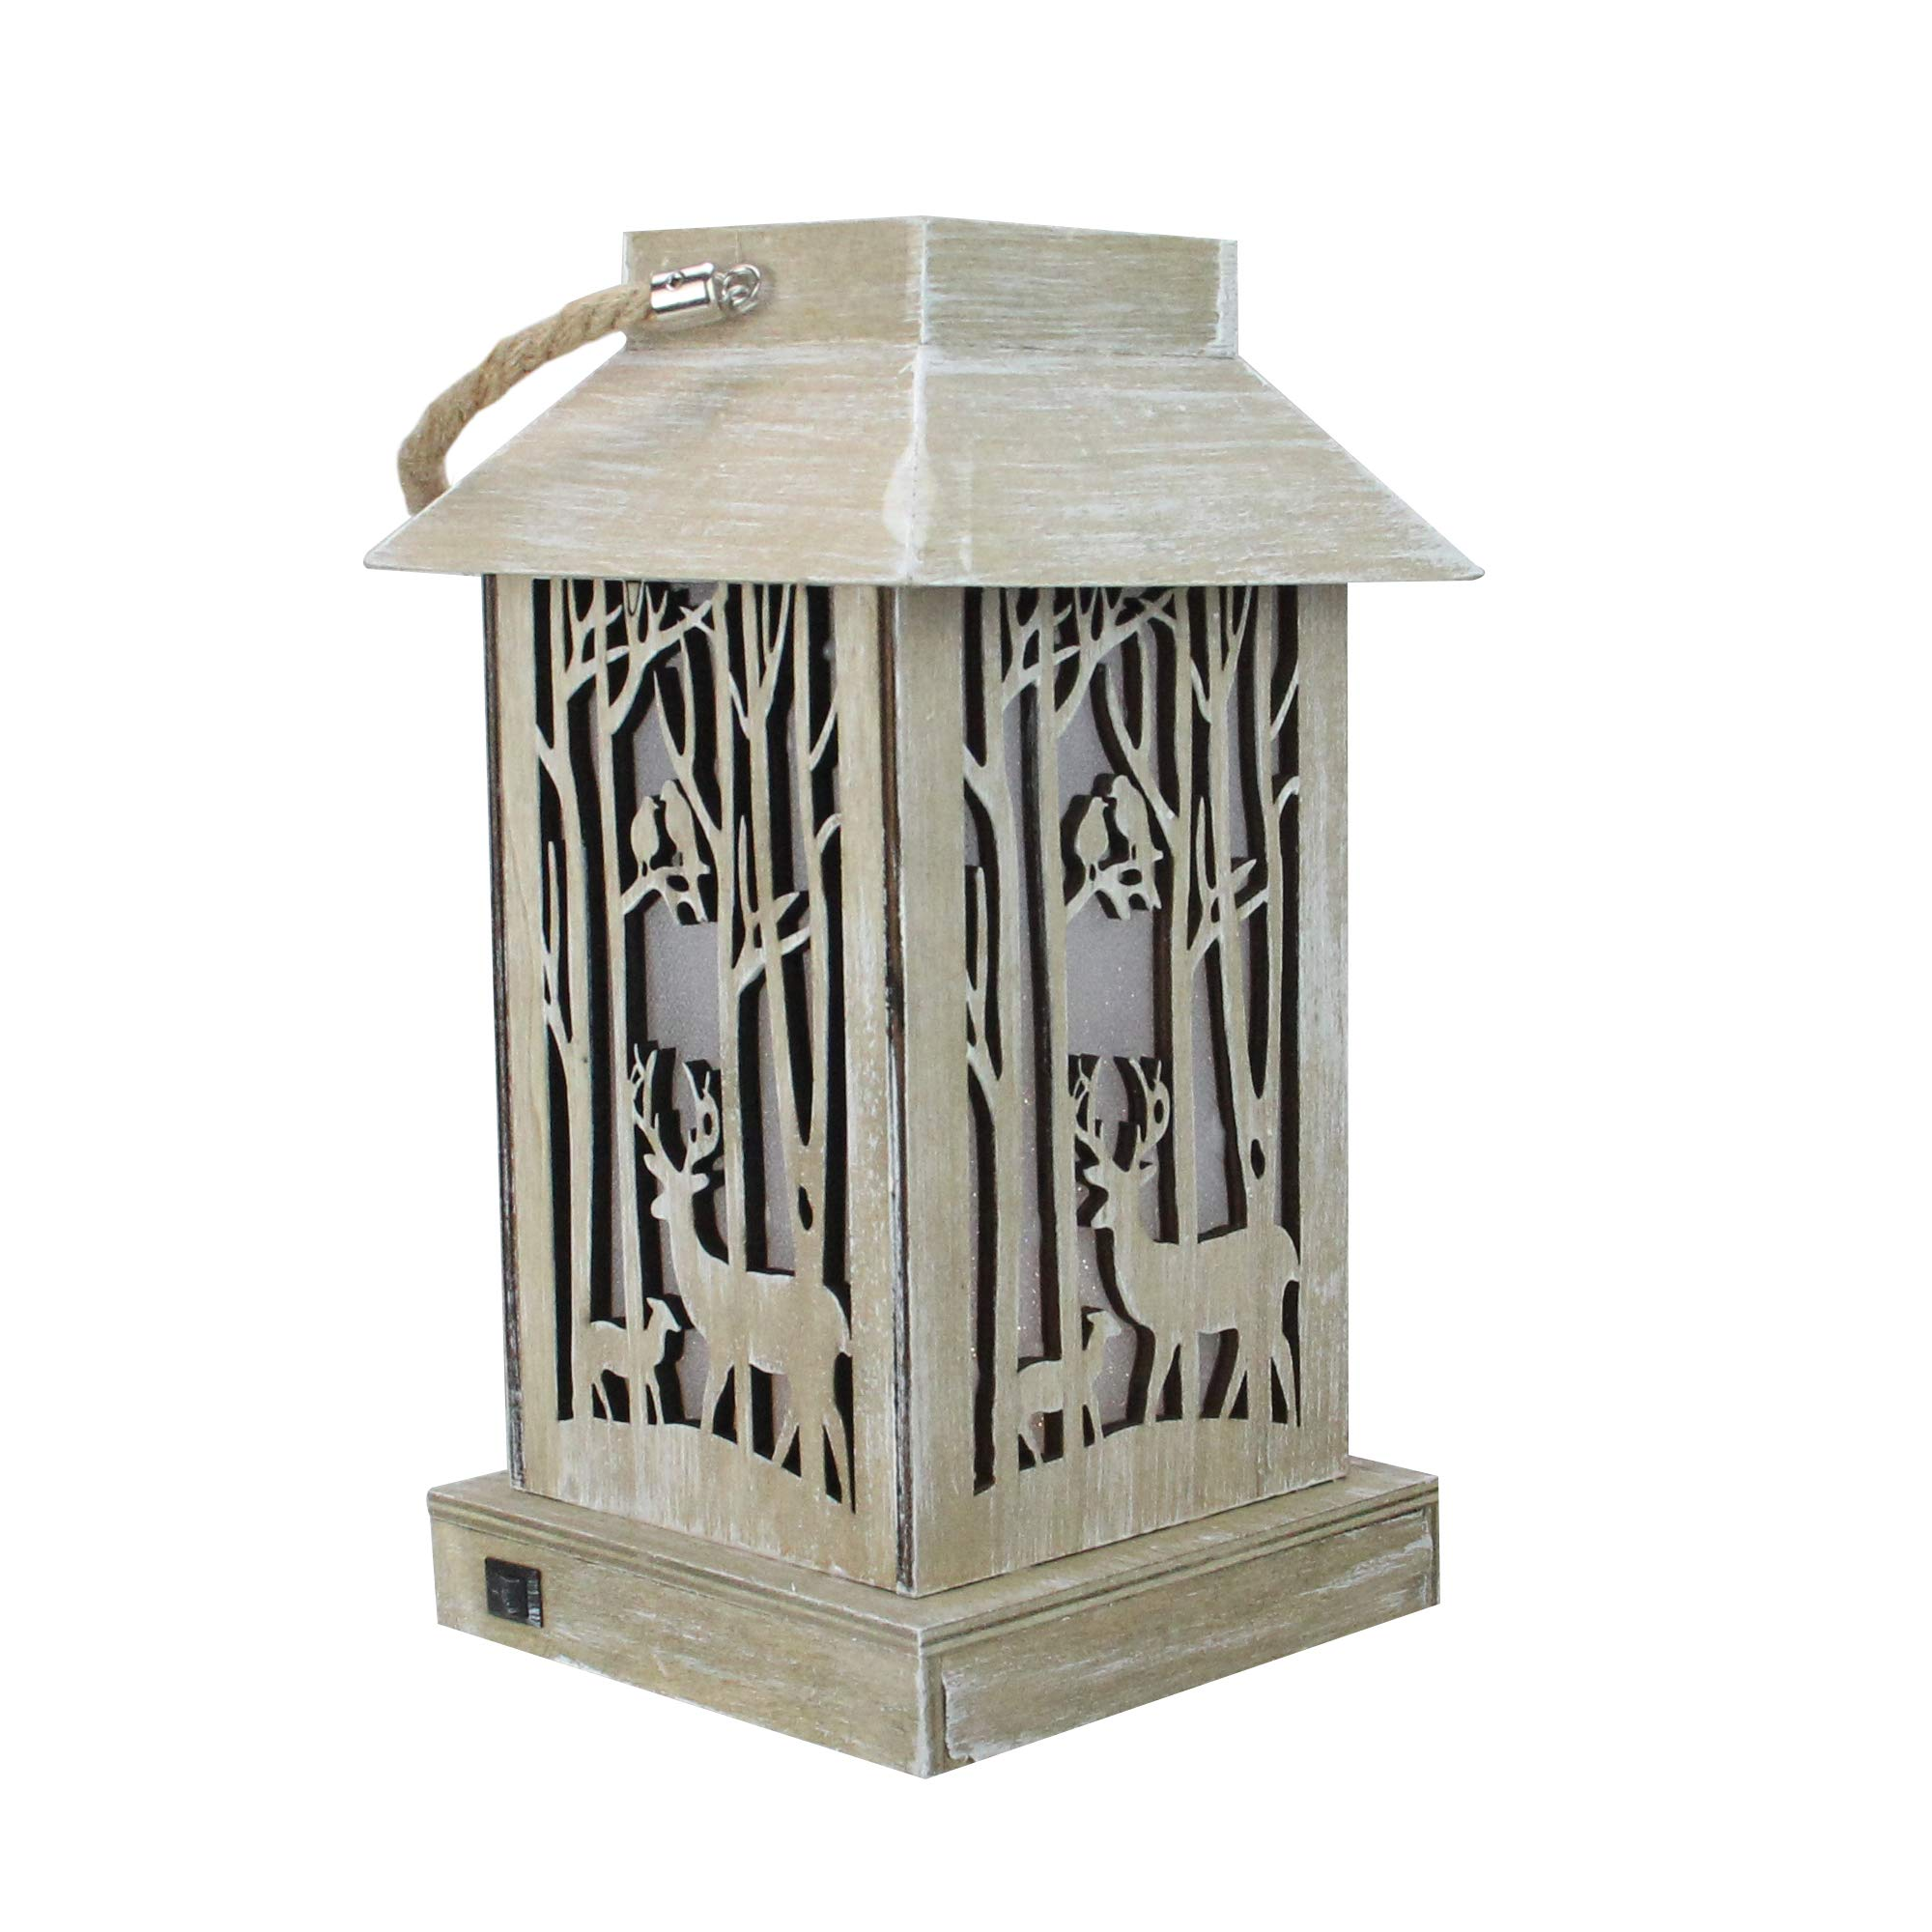 Diva At Home 9.5'' Lighted Wooden Reindeer with Trees Silhouette Lantern Christmas Decoration